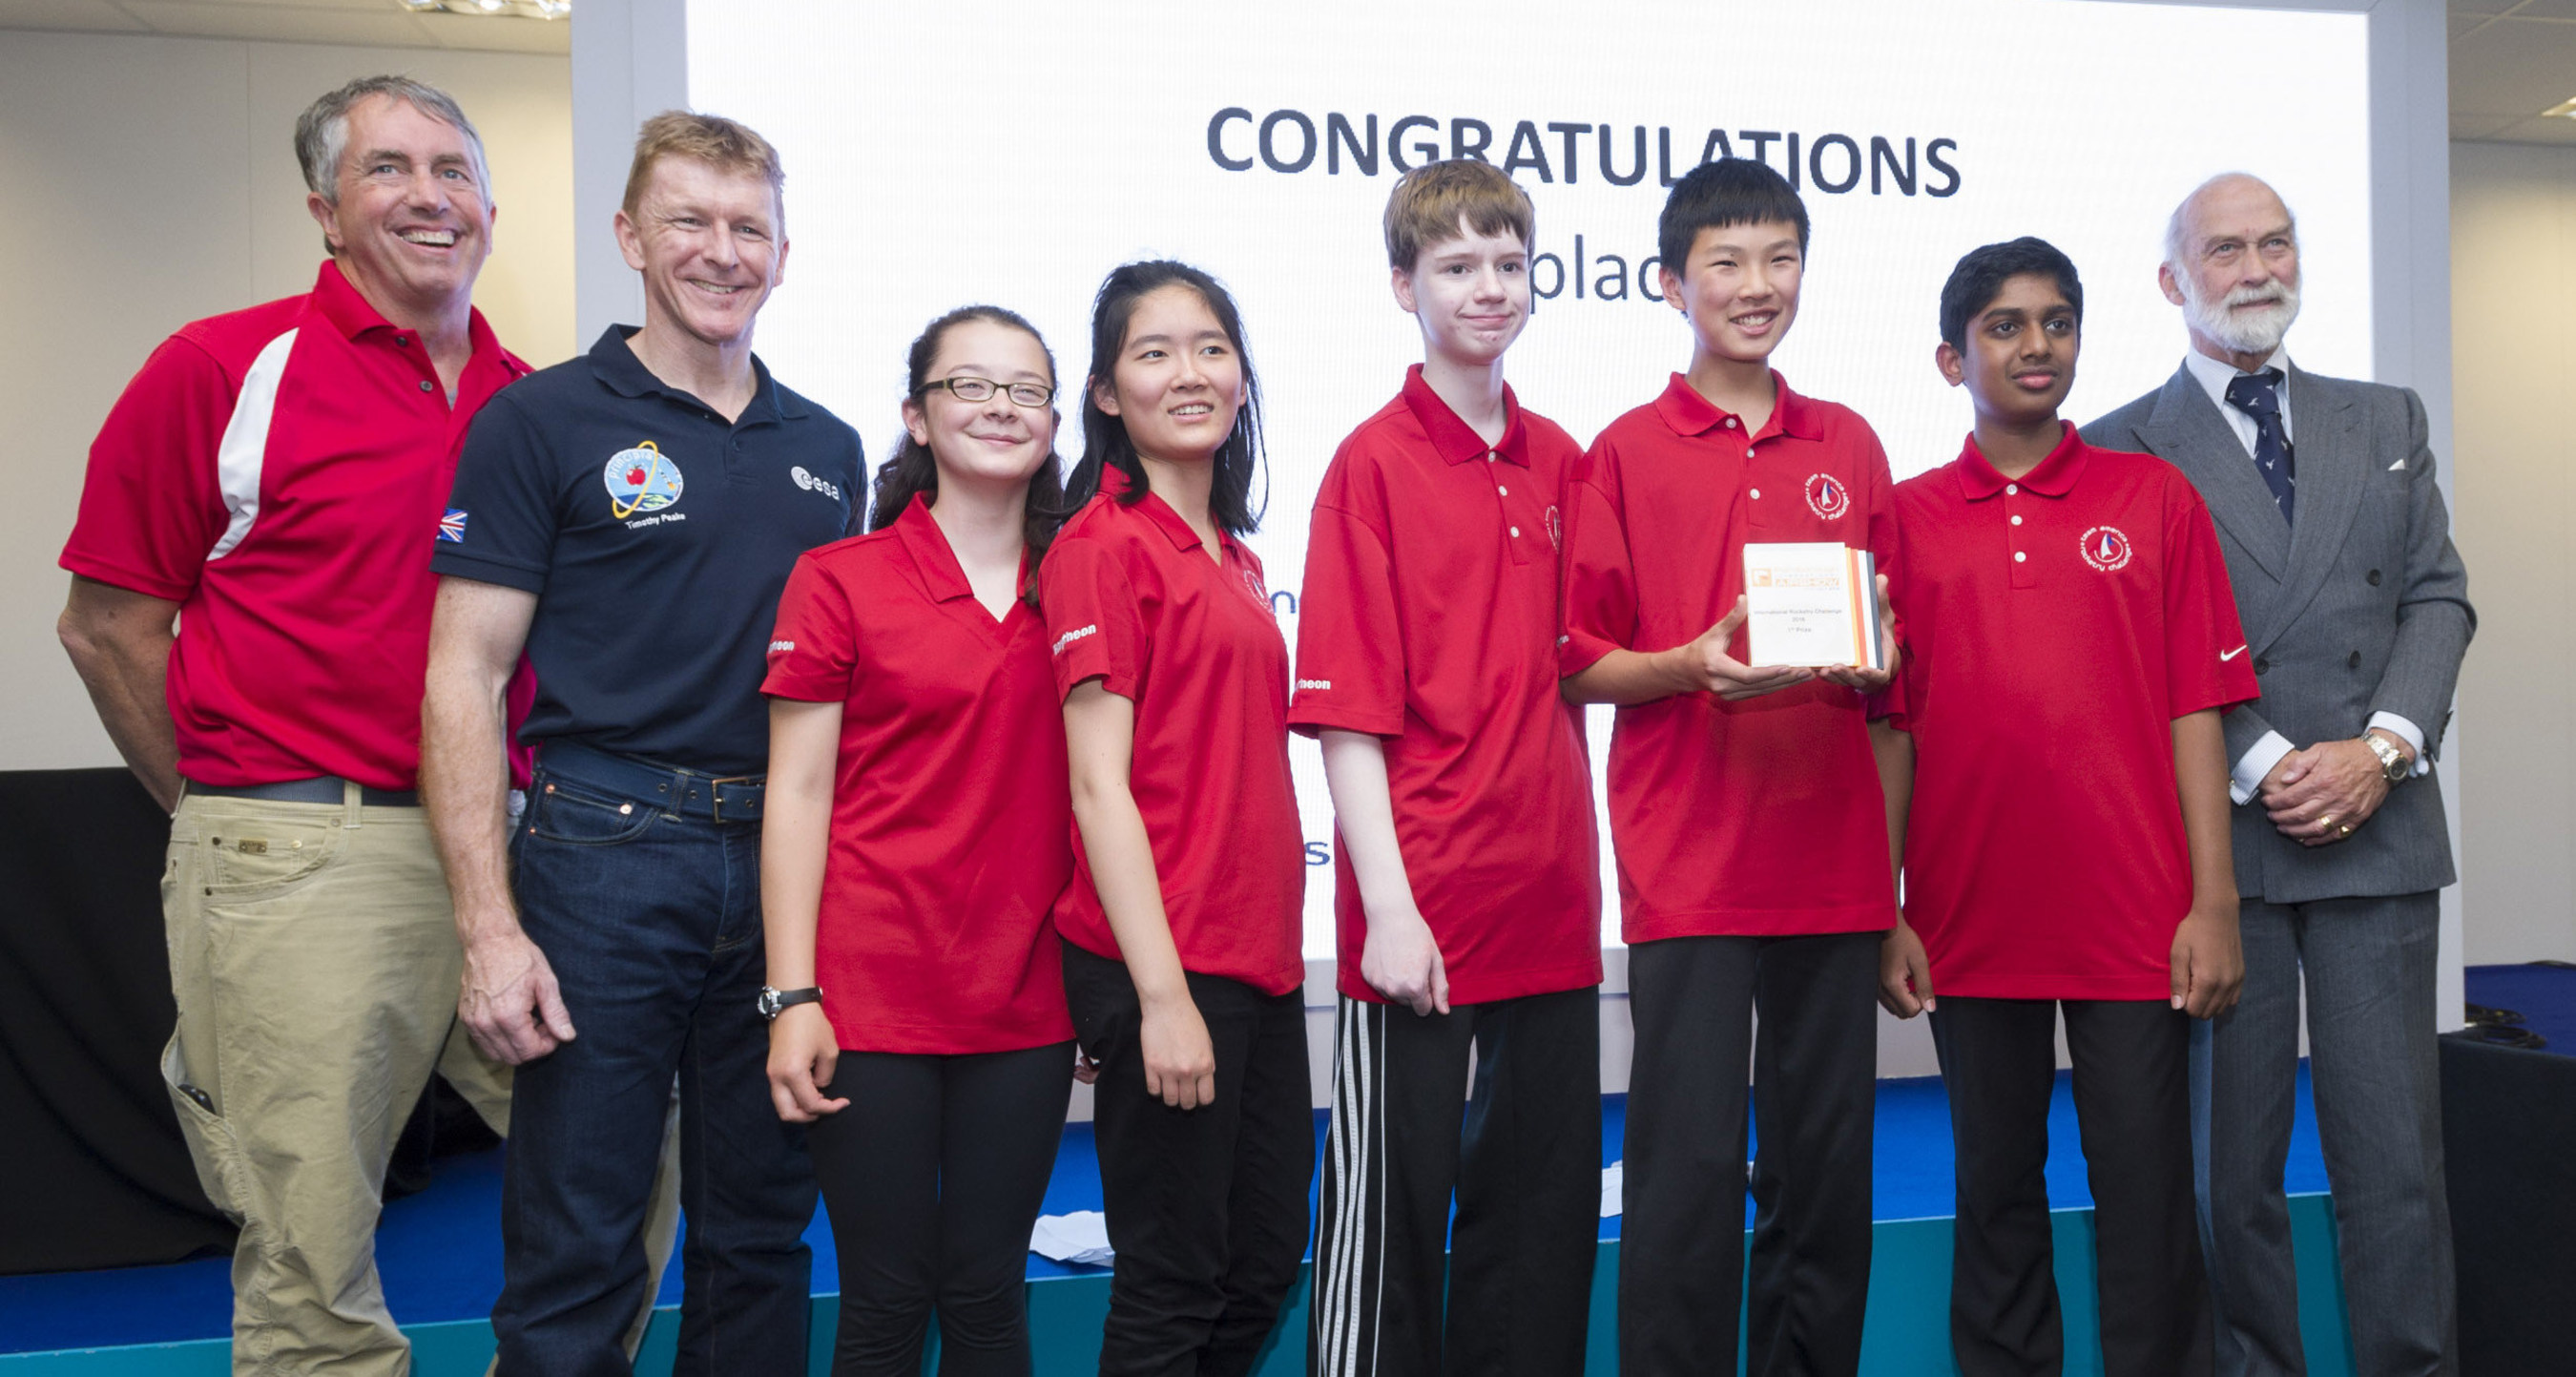 """Congratulations, 2016 International Rocketry Challenge winners, Odle Middle School of Bellevue, Wash! The """"Space Potatoes"""" bested teams from France, Japan and the United Kingdom to take the title of world champions. This is the second consecutive year that a U.S. team has won the championship. (L to R: NAR representative John Hochheimer, UK astronaut Tim Peake, Odle team captain Mikaela Ikeda, Stephanie Han, Karl Deerkop, Larry Jing, Srivatshan Sakthinarayanan, and His Royal Highness Prince Michael of Kent. Photo courtesy of the Raytheon Company.)"""